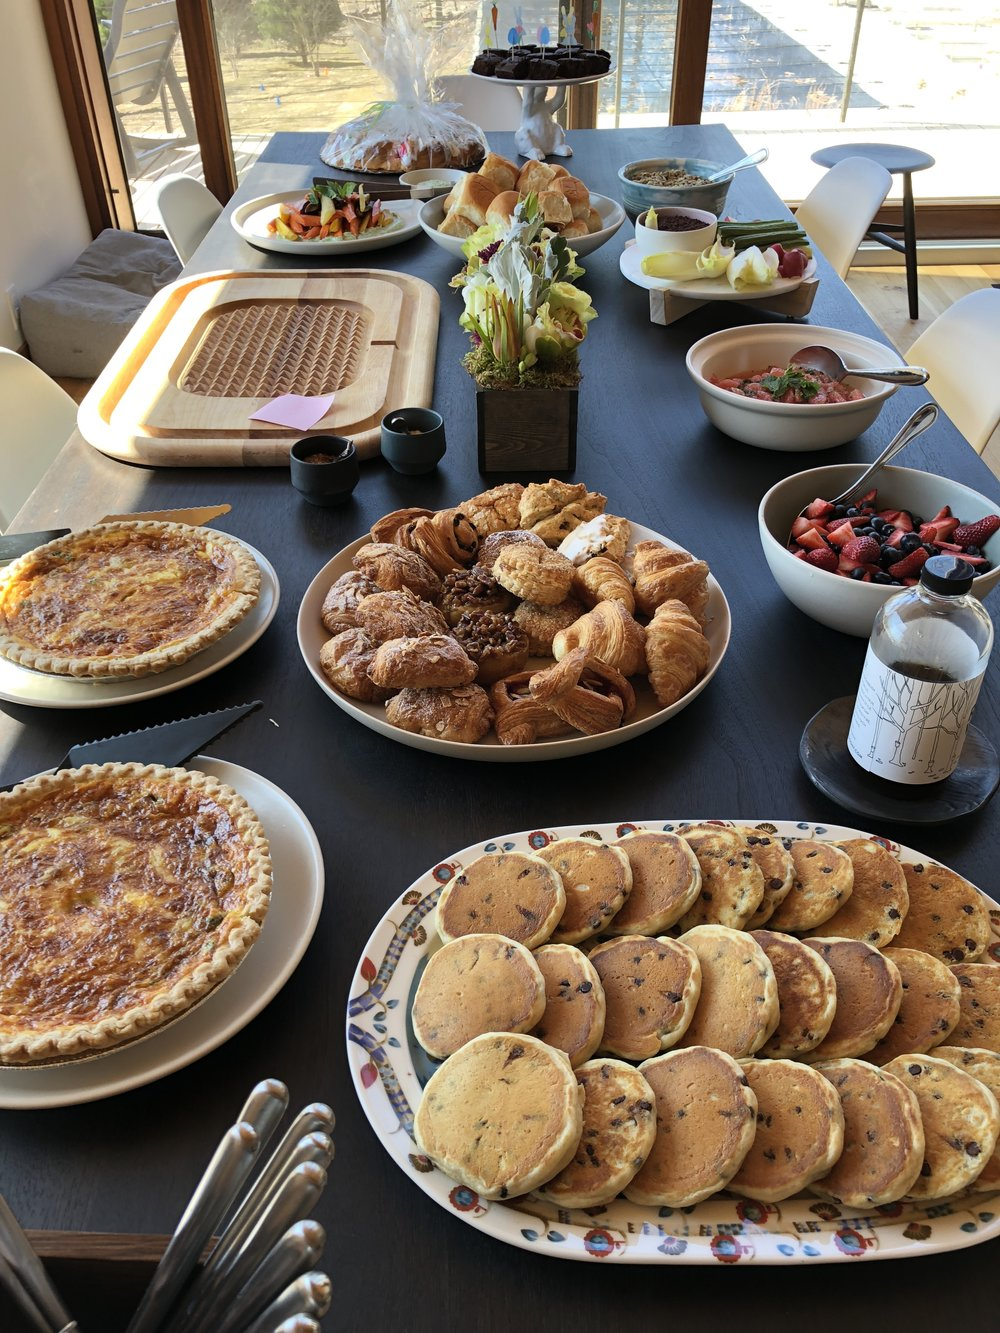 Part of our Easter Brunch spread